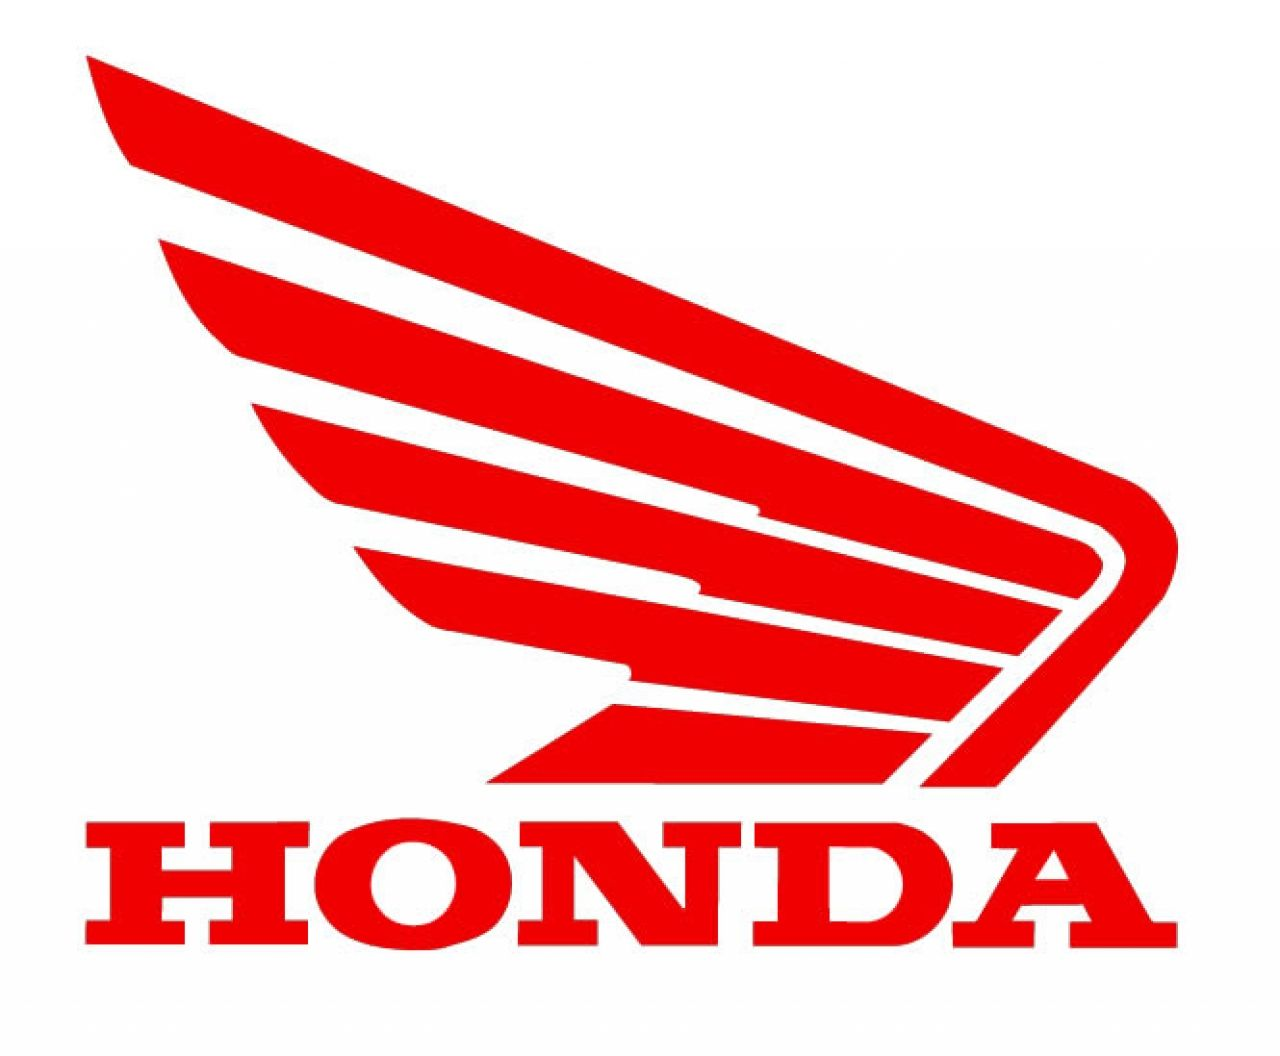 honda motorcycle logo wallpaper hd background 9 hd wallpapers projects to try pinterest. Black Bedroom Furniture Sets. Home Design Ideas